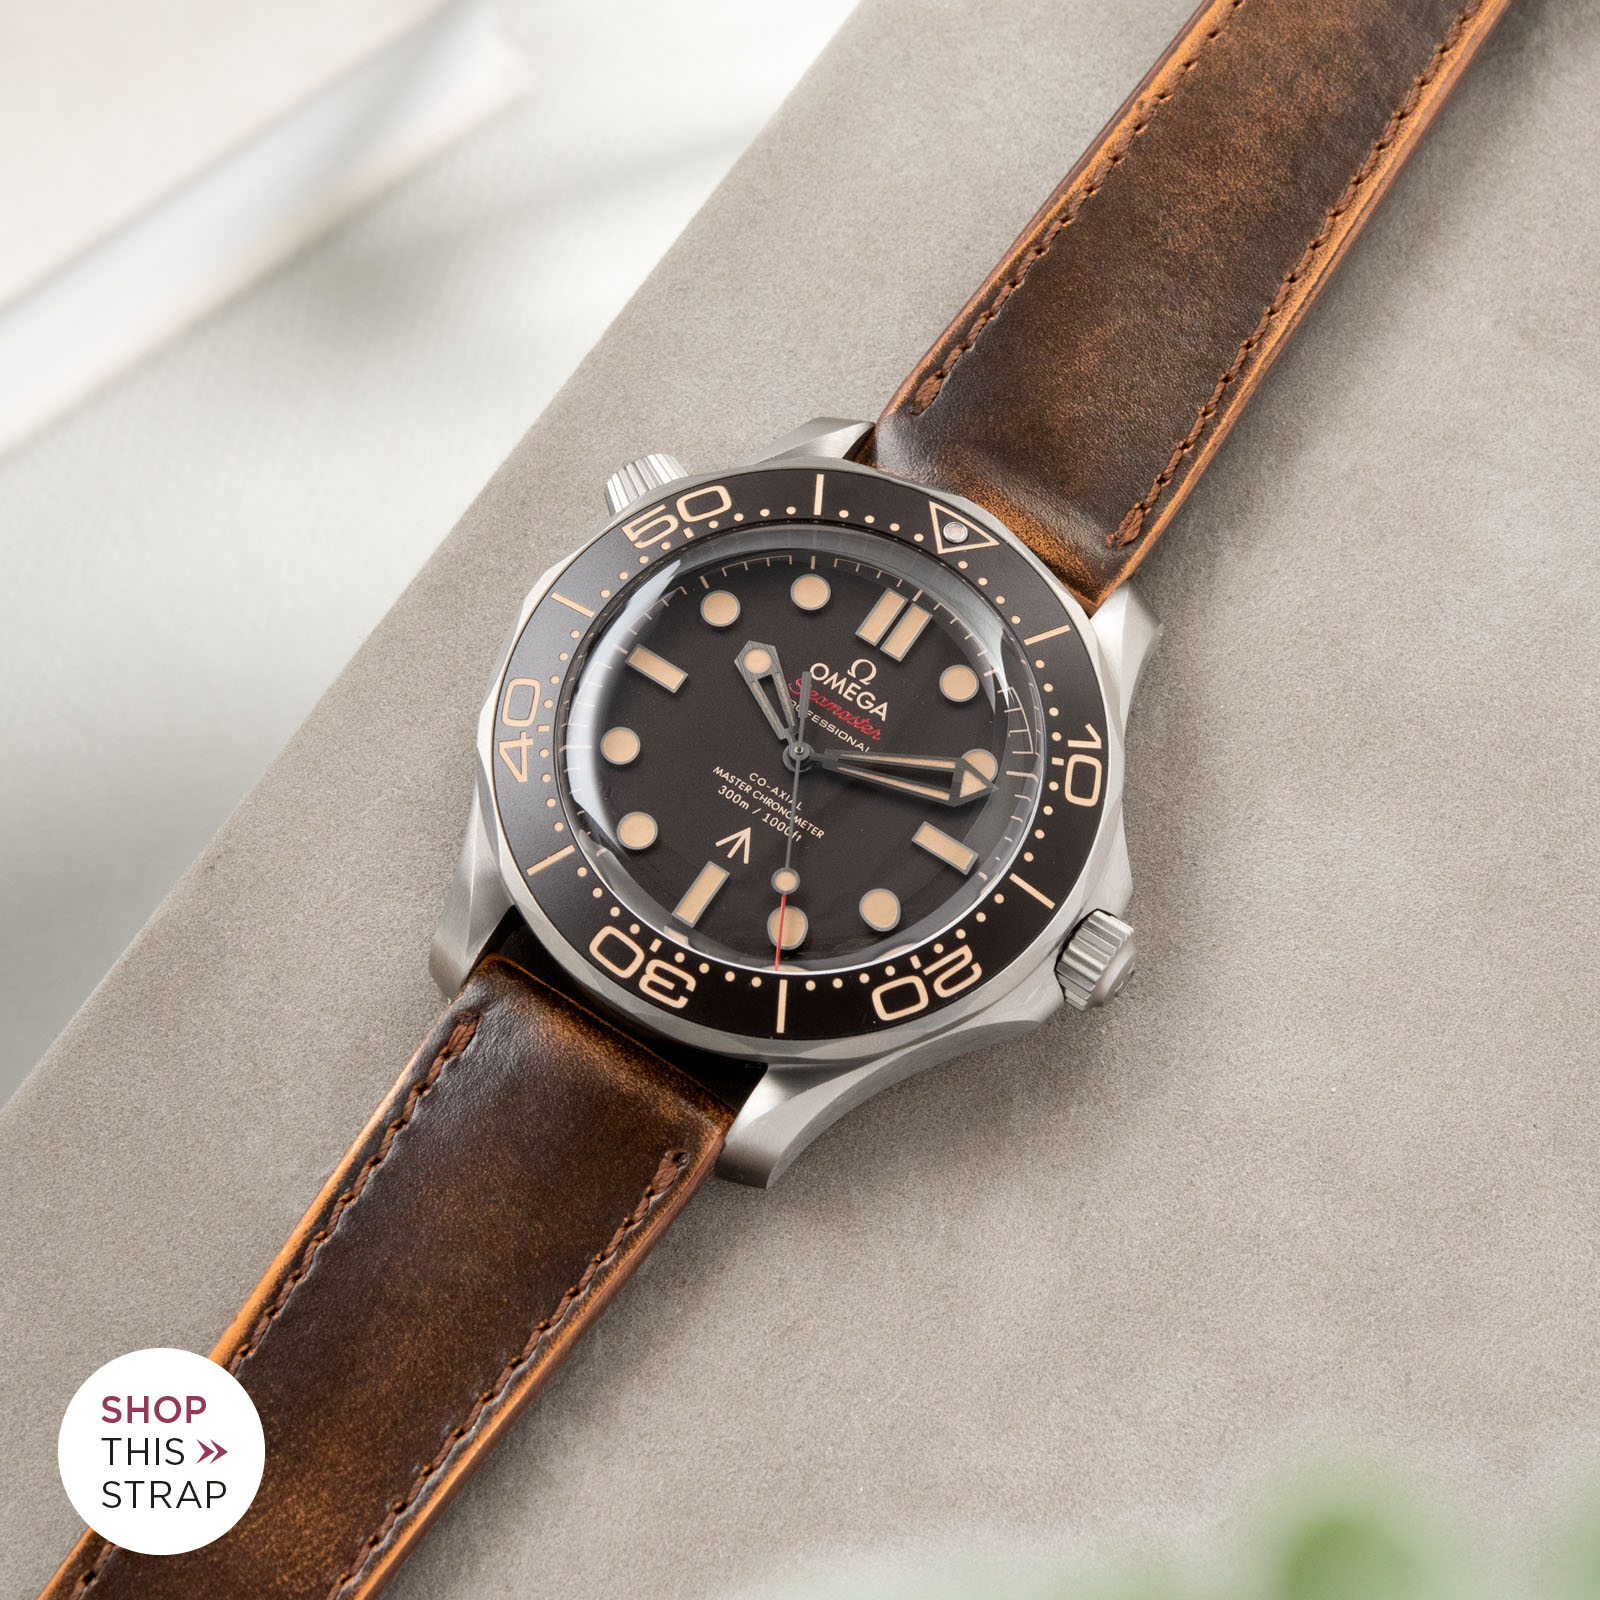 Bulang and Sons_Strapguide_Omega Seamaster_DEgrade Honey Brown Leather Watch Strap